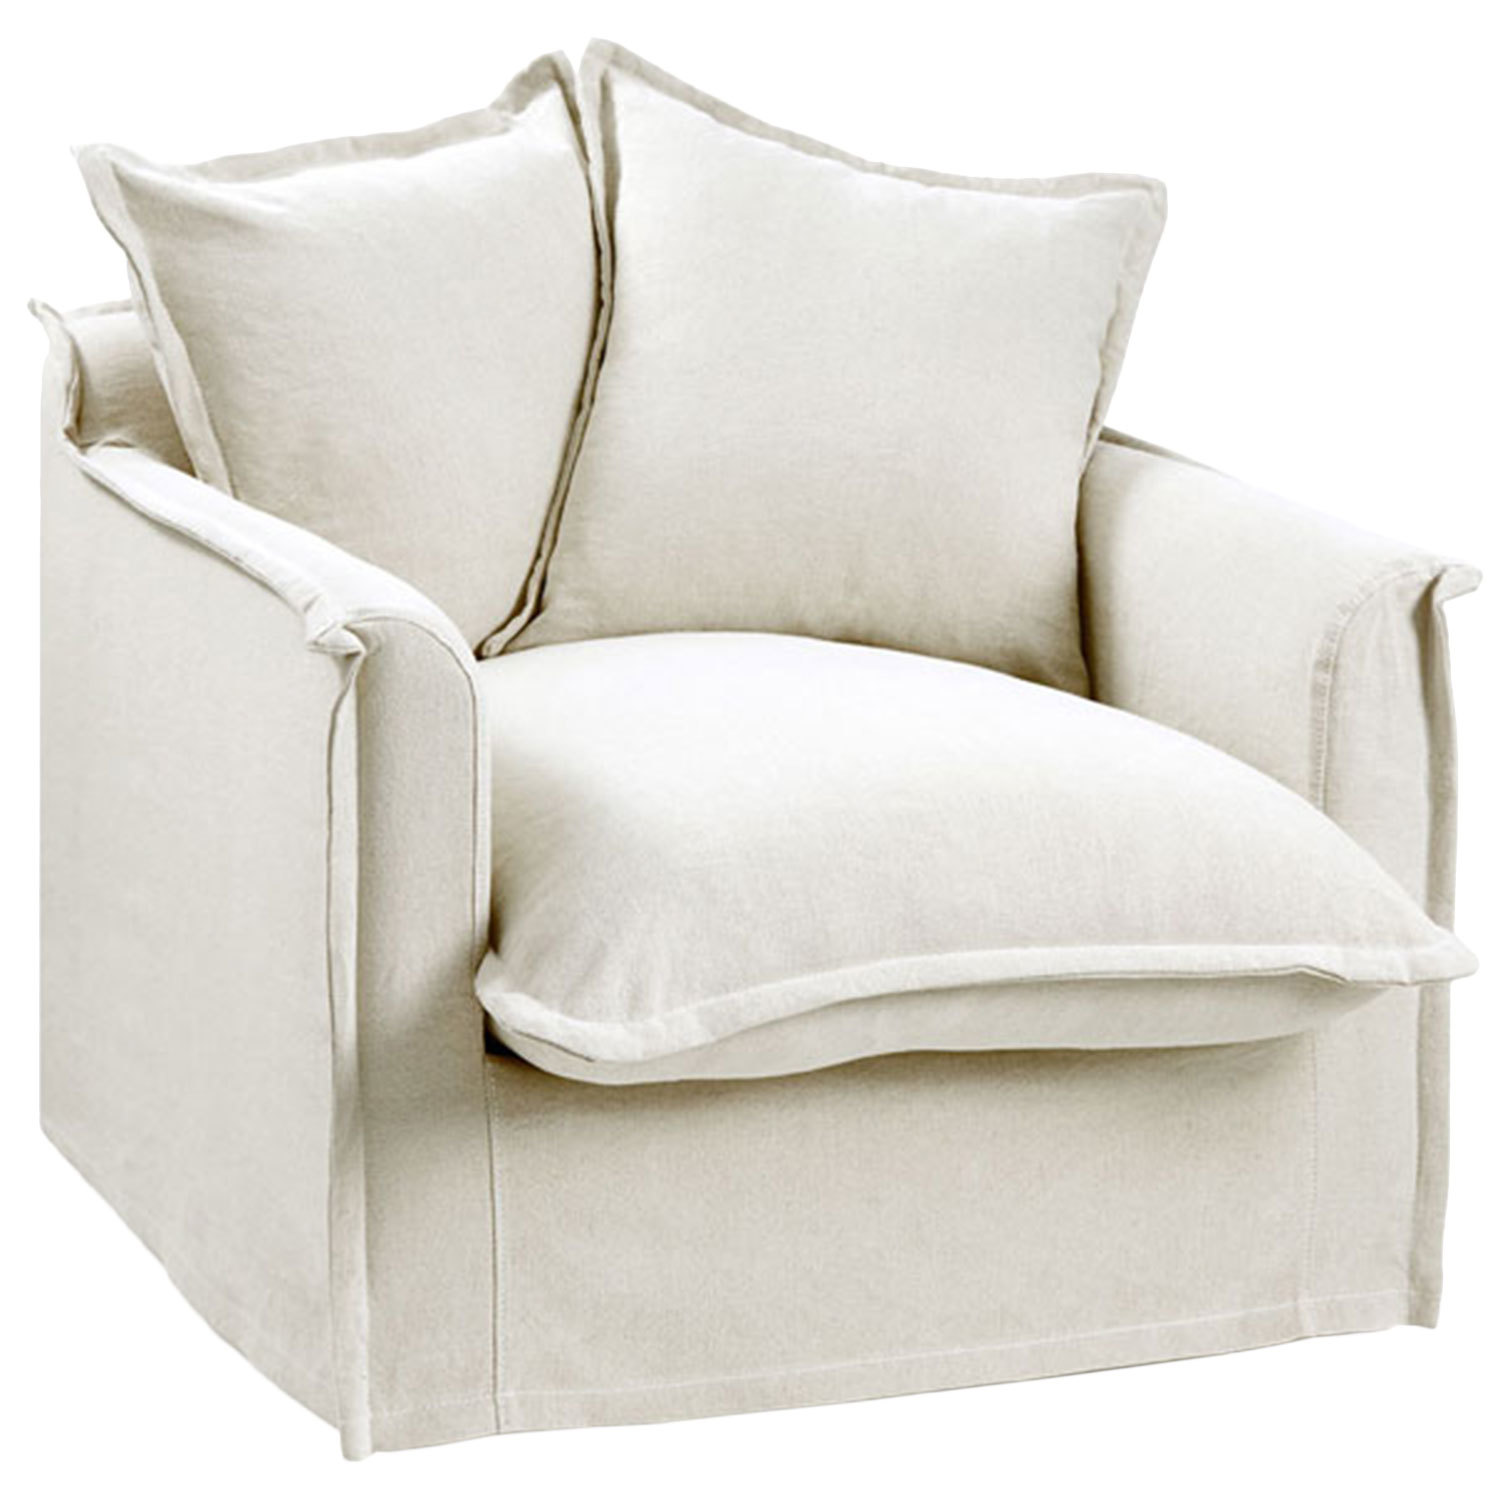 Slip Cover For Chair Stone Cumulus Slipcover Armchair